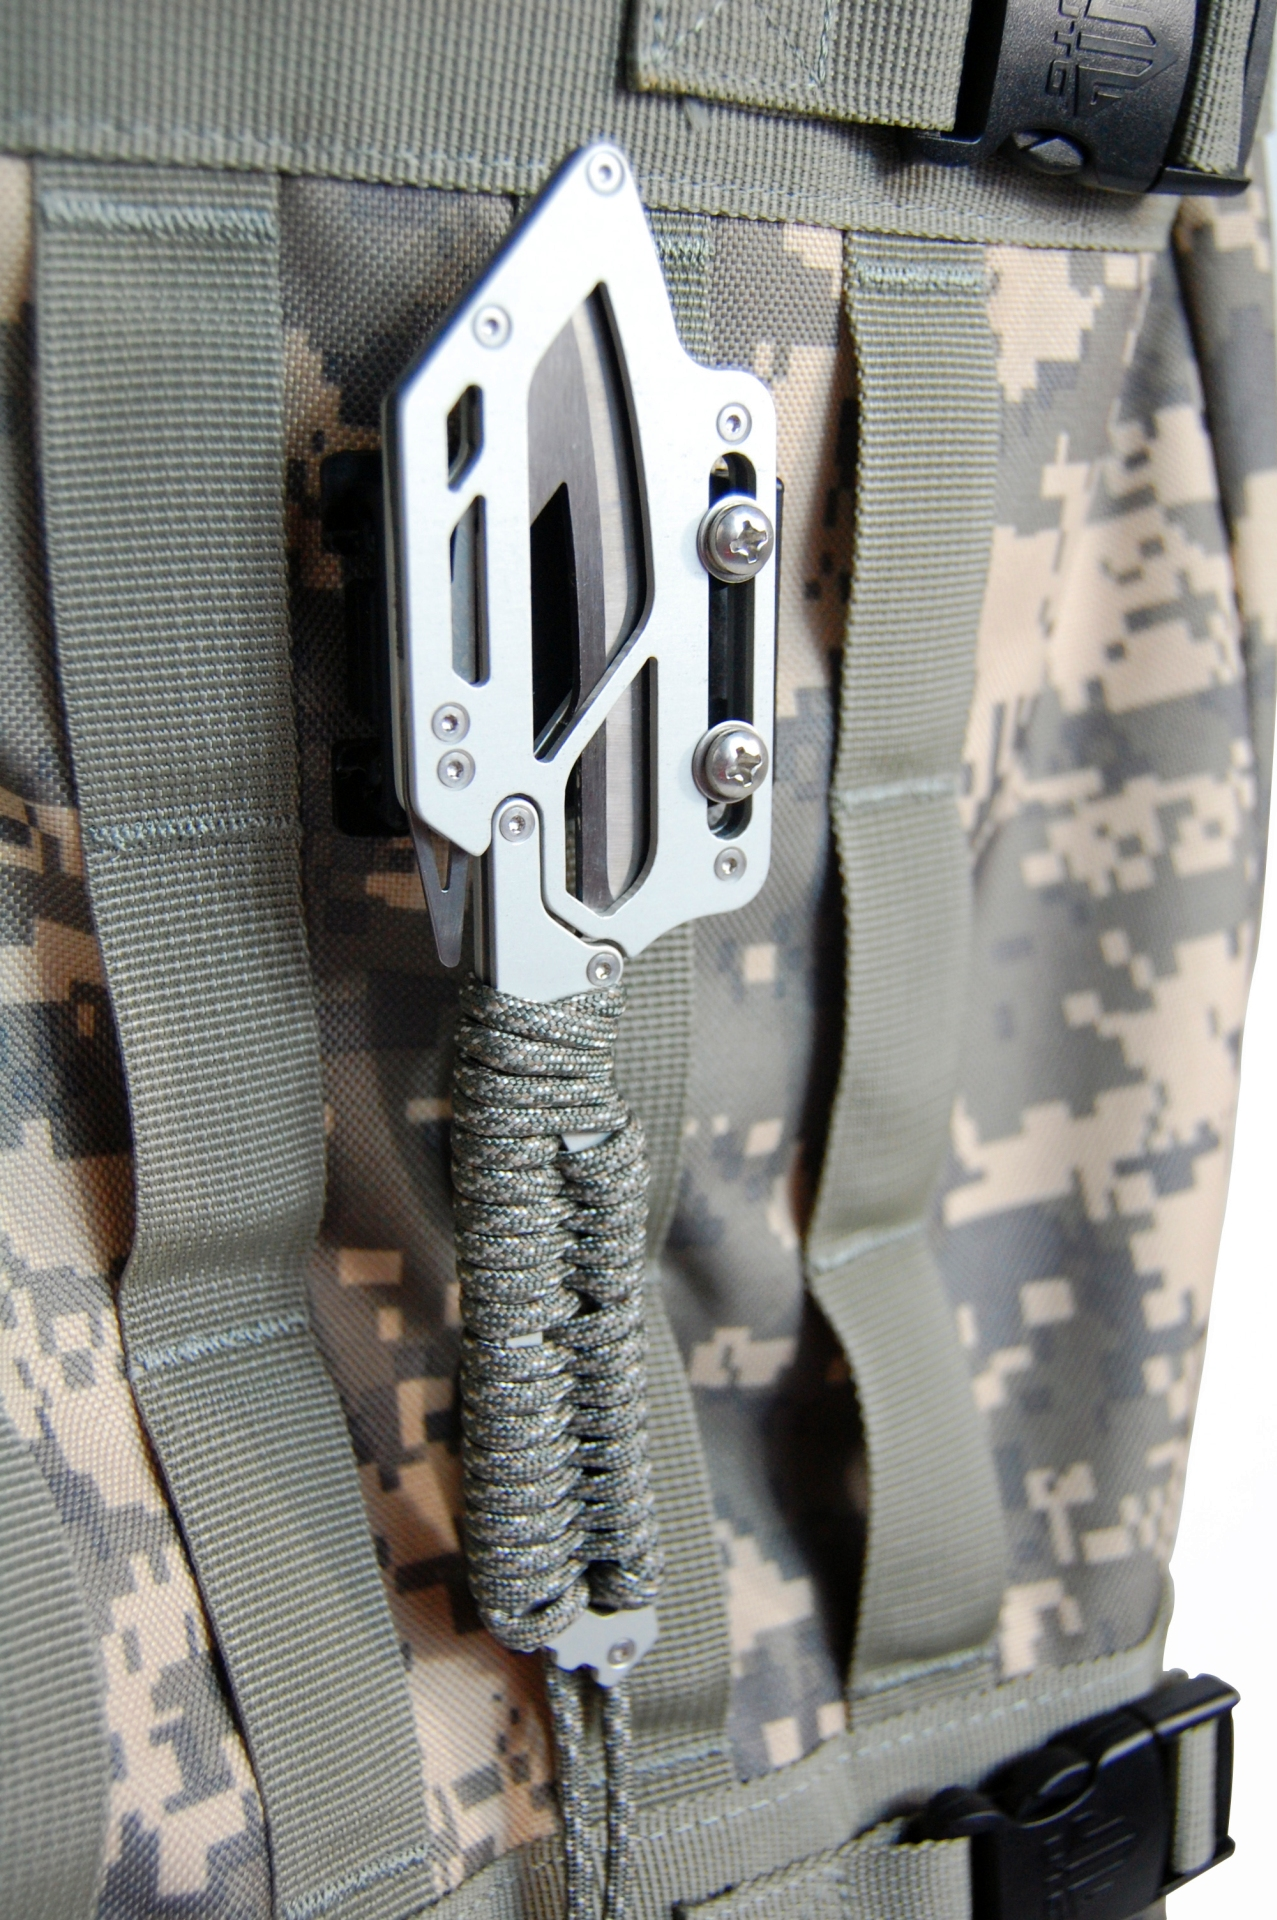 MOLLE Compatible and Angle Adjusts in 45 Degree Increments